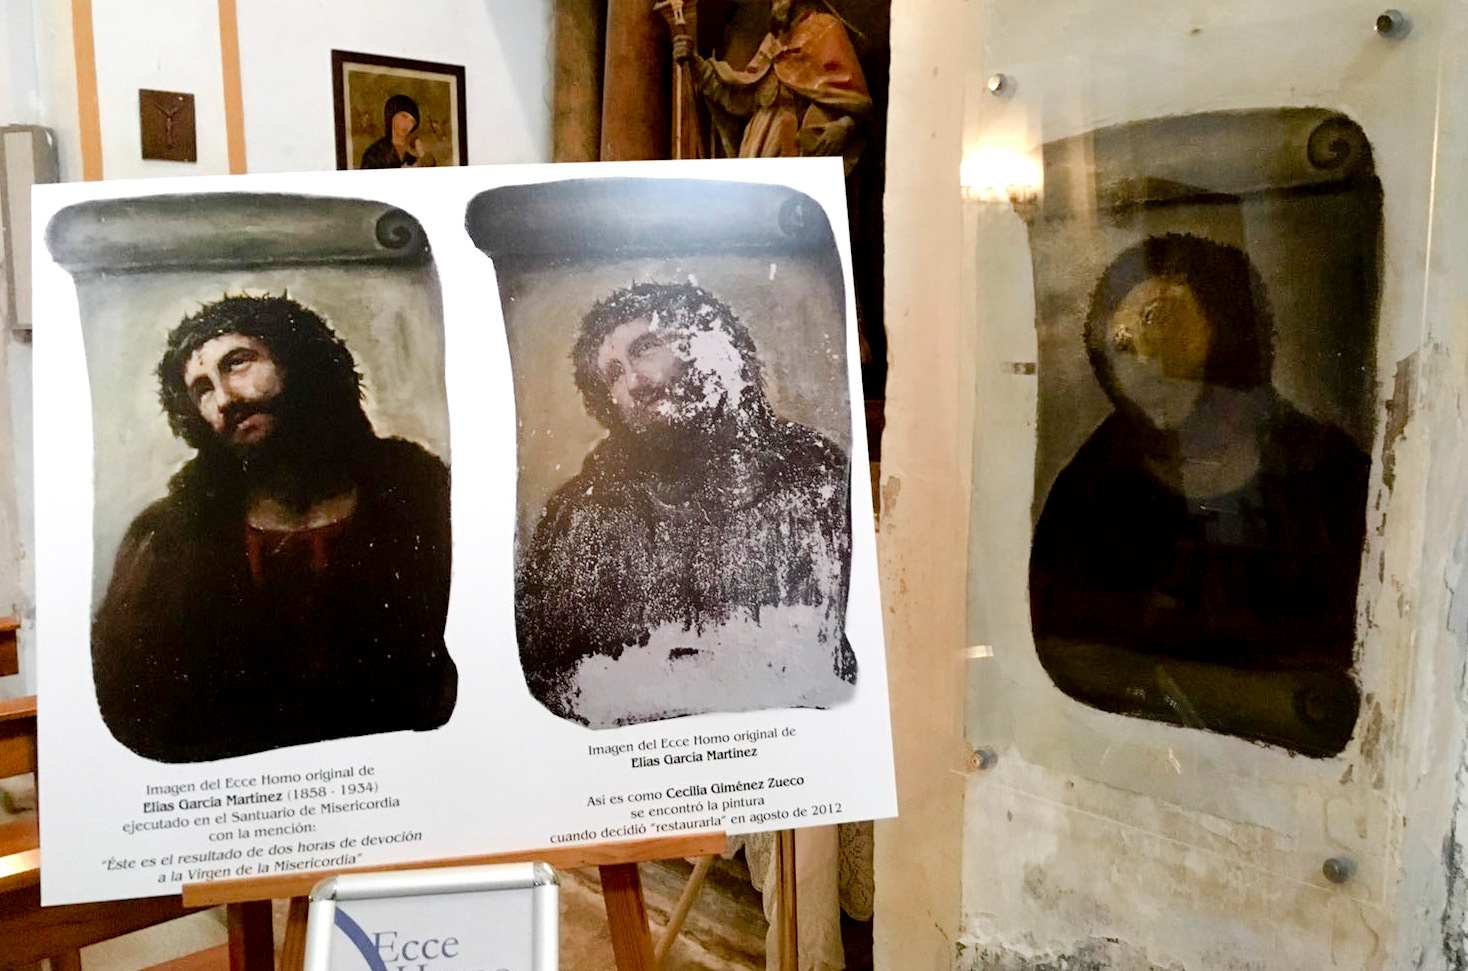 View of the deteriorated version of 'Ecce Homo' mural by 19th century painter Elias Garcia Martinez, right, next to a copy of the original, left, at the Borja Church in Zaragoza, Spain.